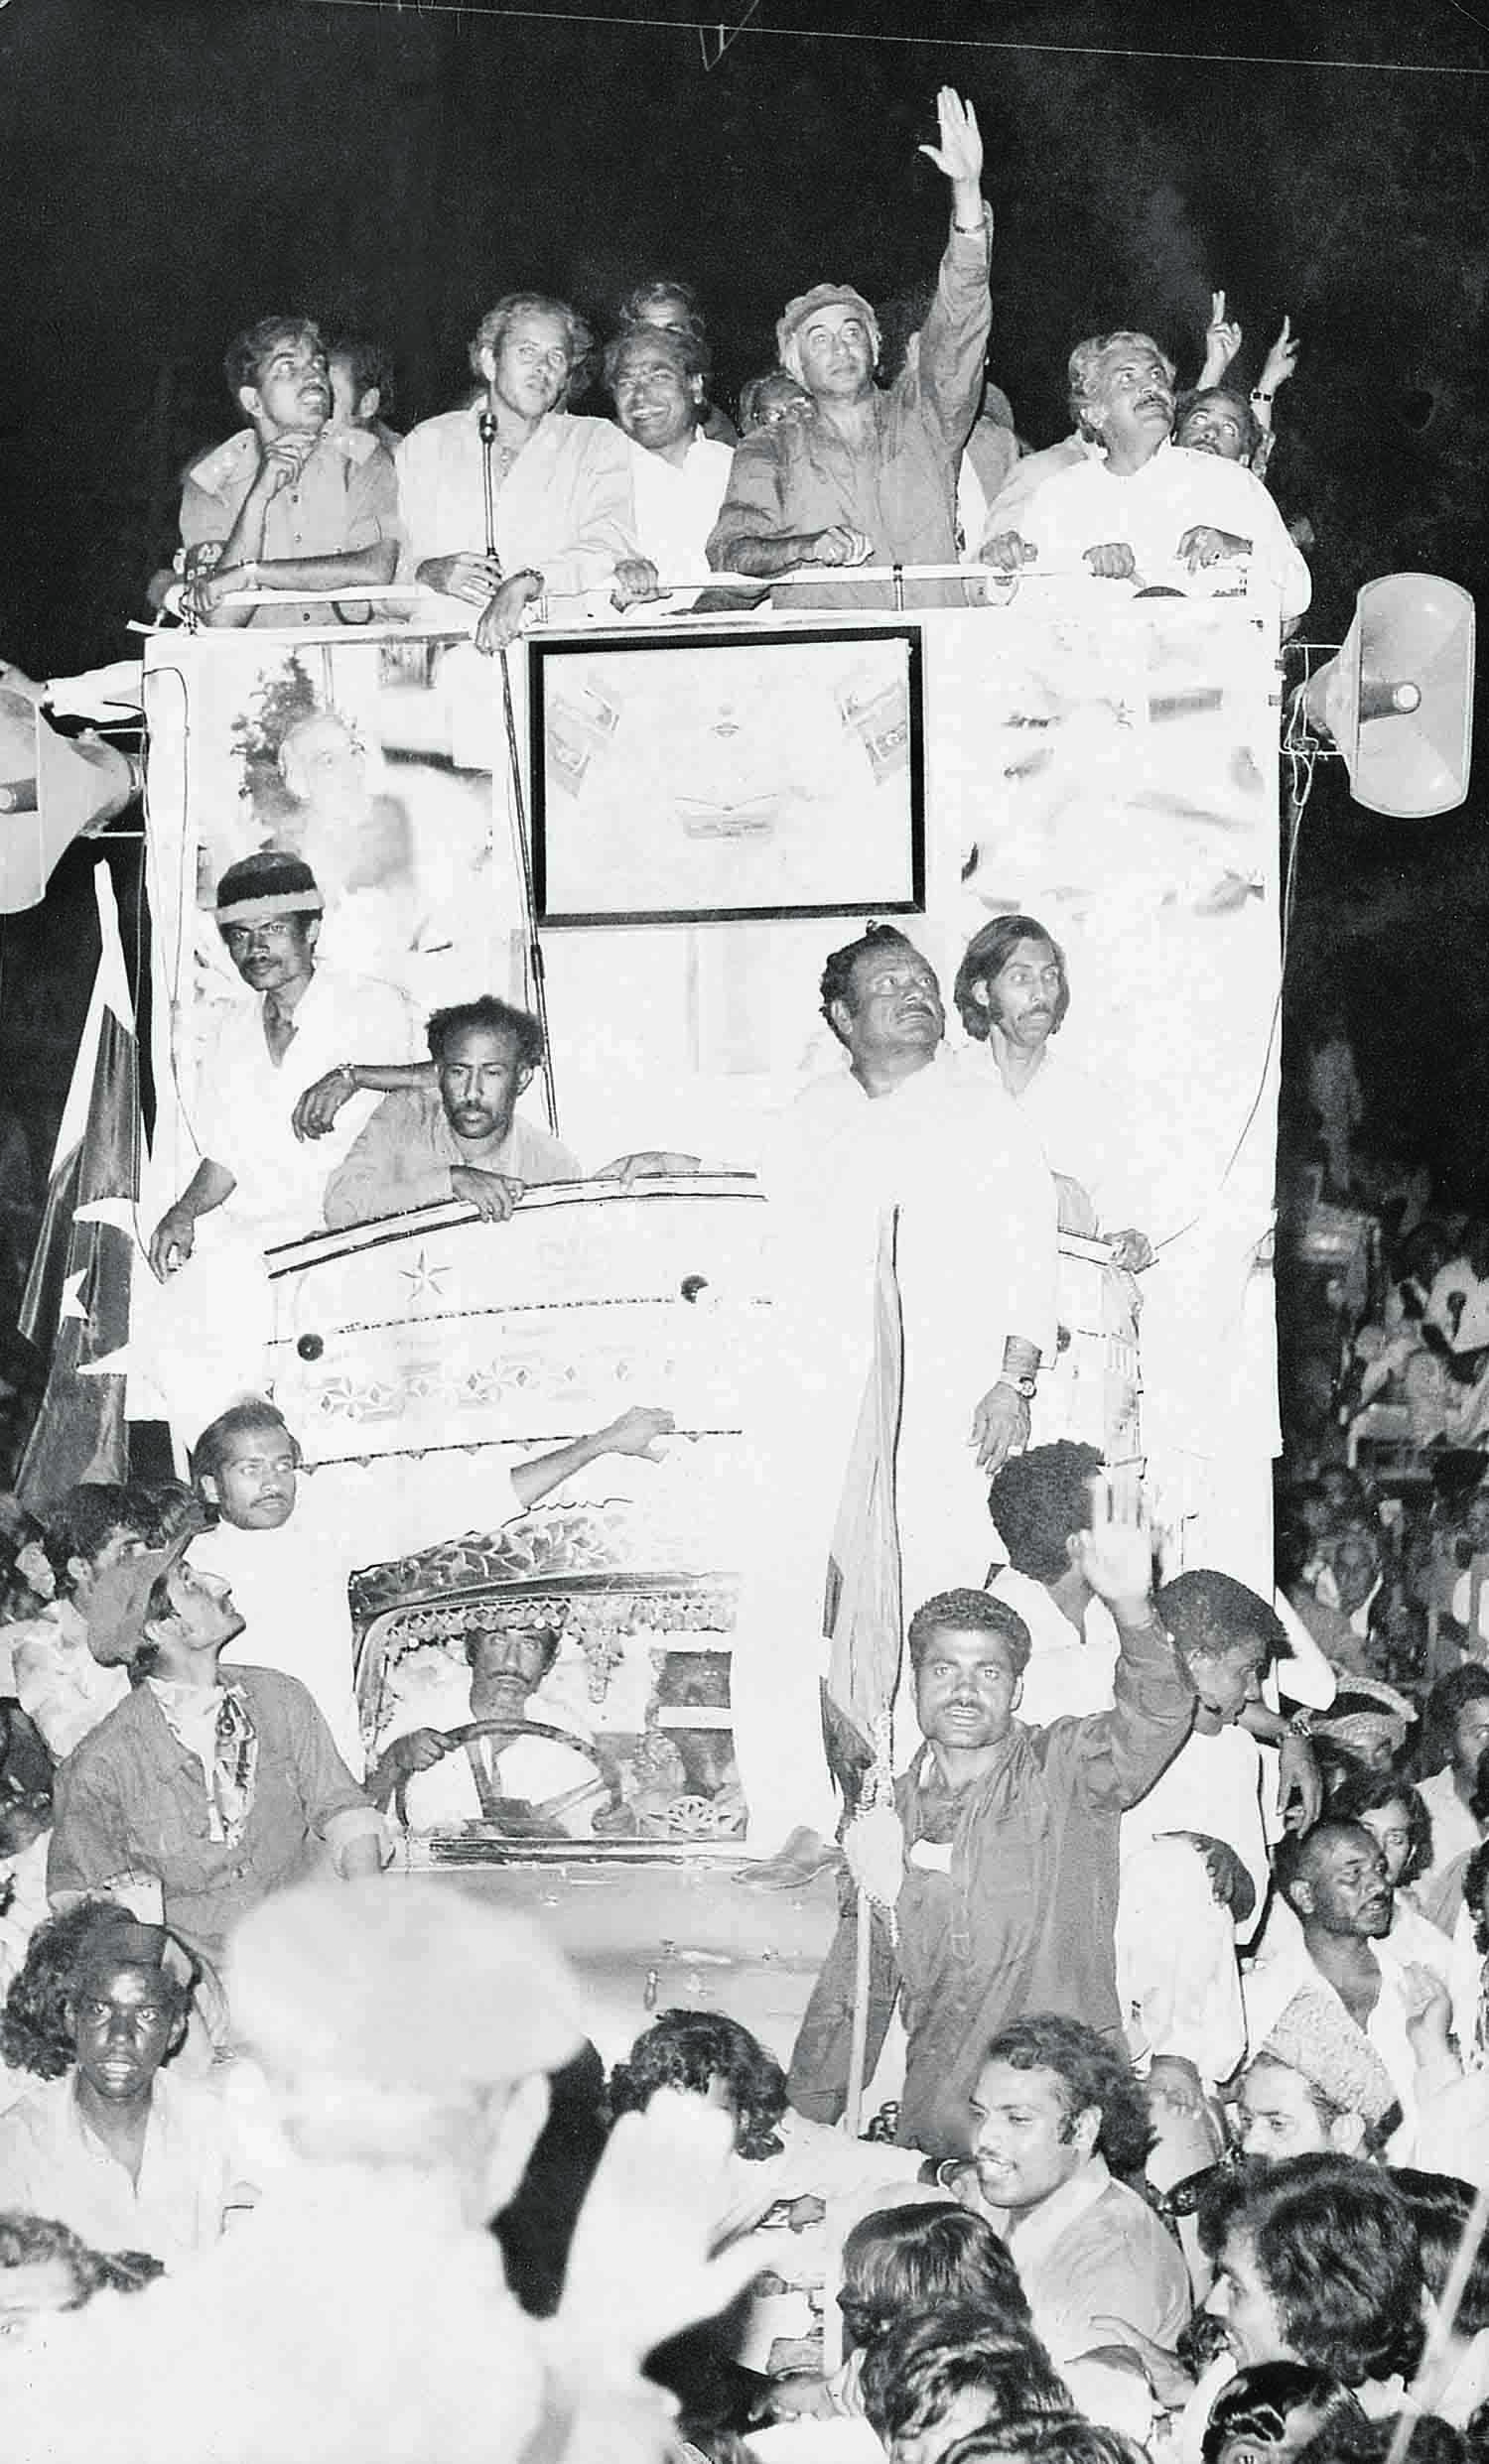 Even though Karachi was never a PPP stronghold, Zulfikar Ali Bhutto was just as impassioned in his election campaign here as anywhere across the country. | Photo: The Press Information Department, Ministry of Information, Broadcasting & National Heritage, Islamabad.